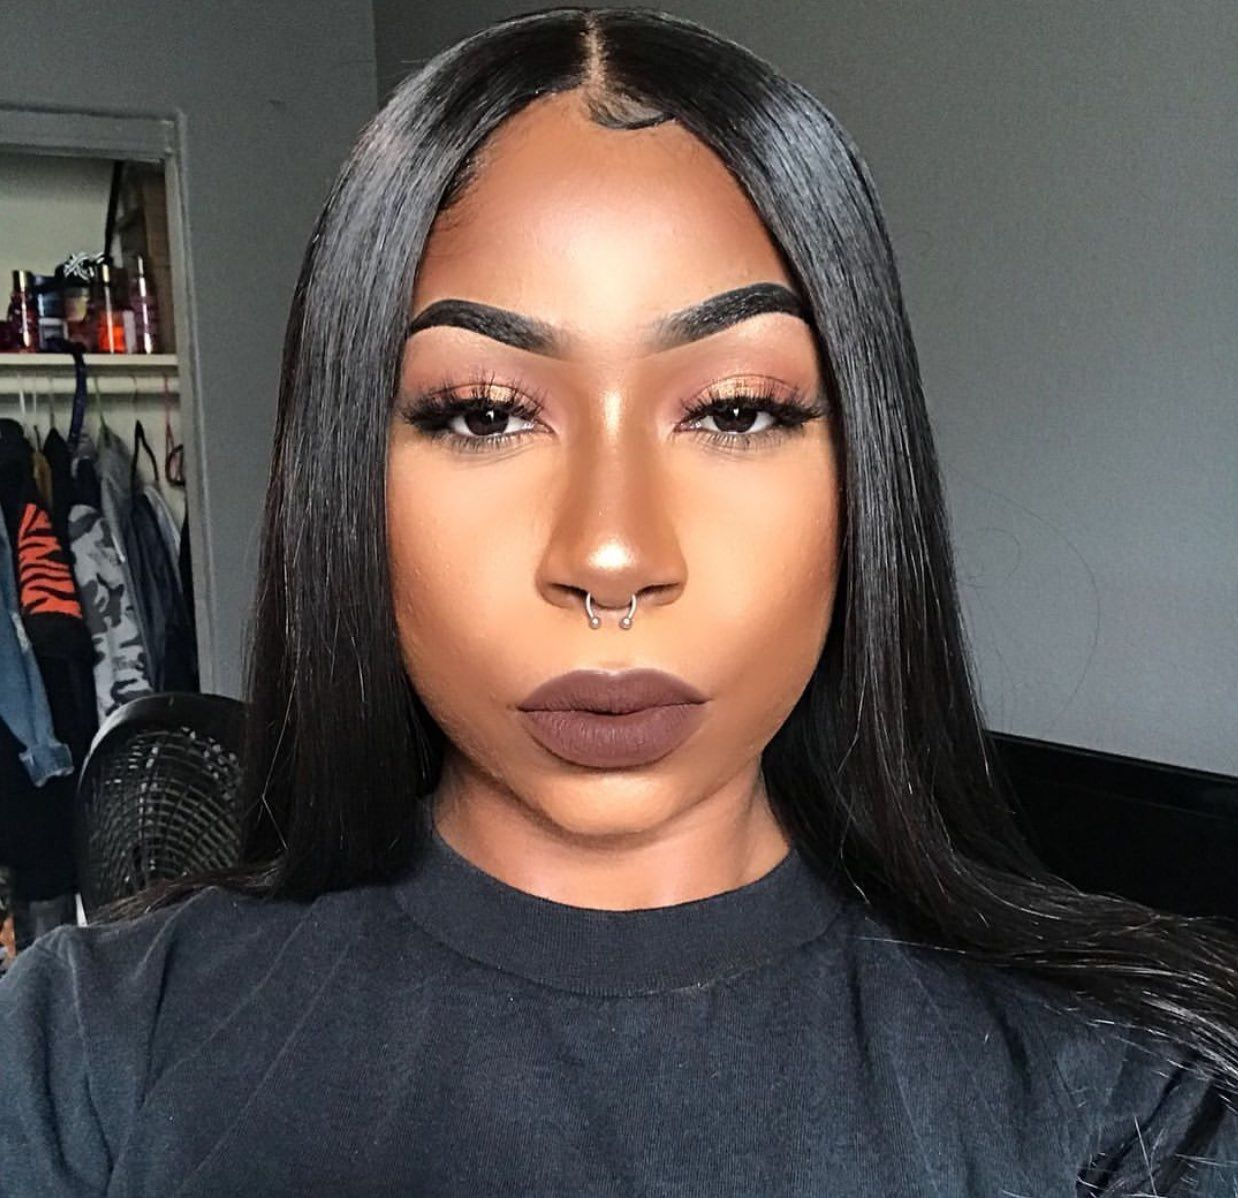 Pin by Nia Grier on Hair & Beauty Black girl makeup